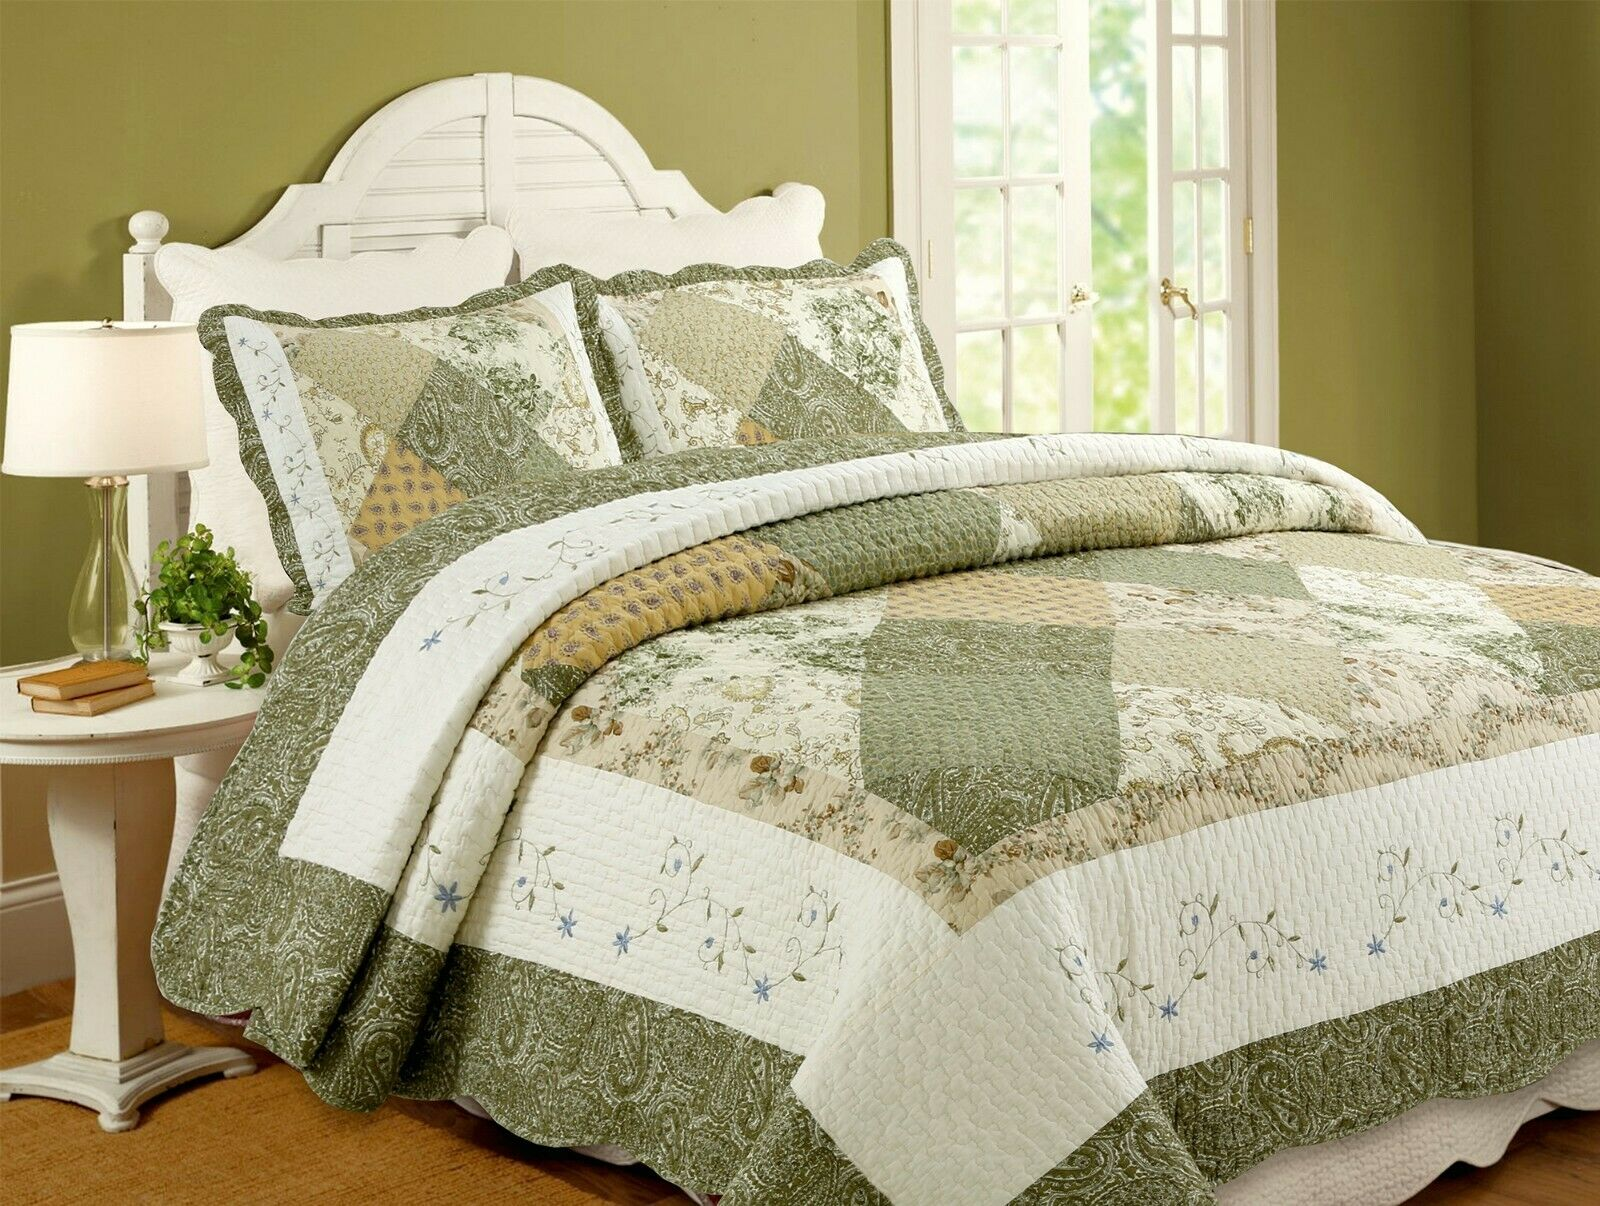 Cozy Line Home Fashions Floral Patchwork Green Beige Khaki Yellow Country 100 For Sale Online Ebay